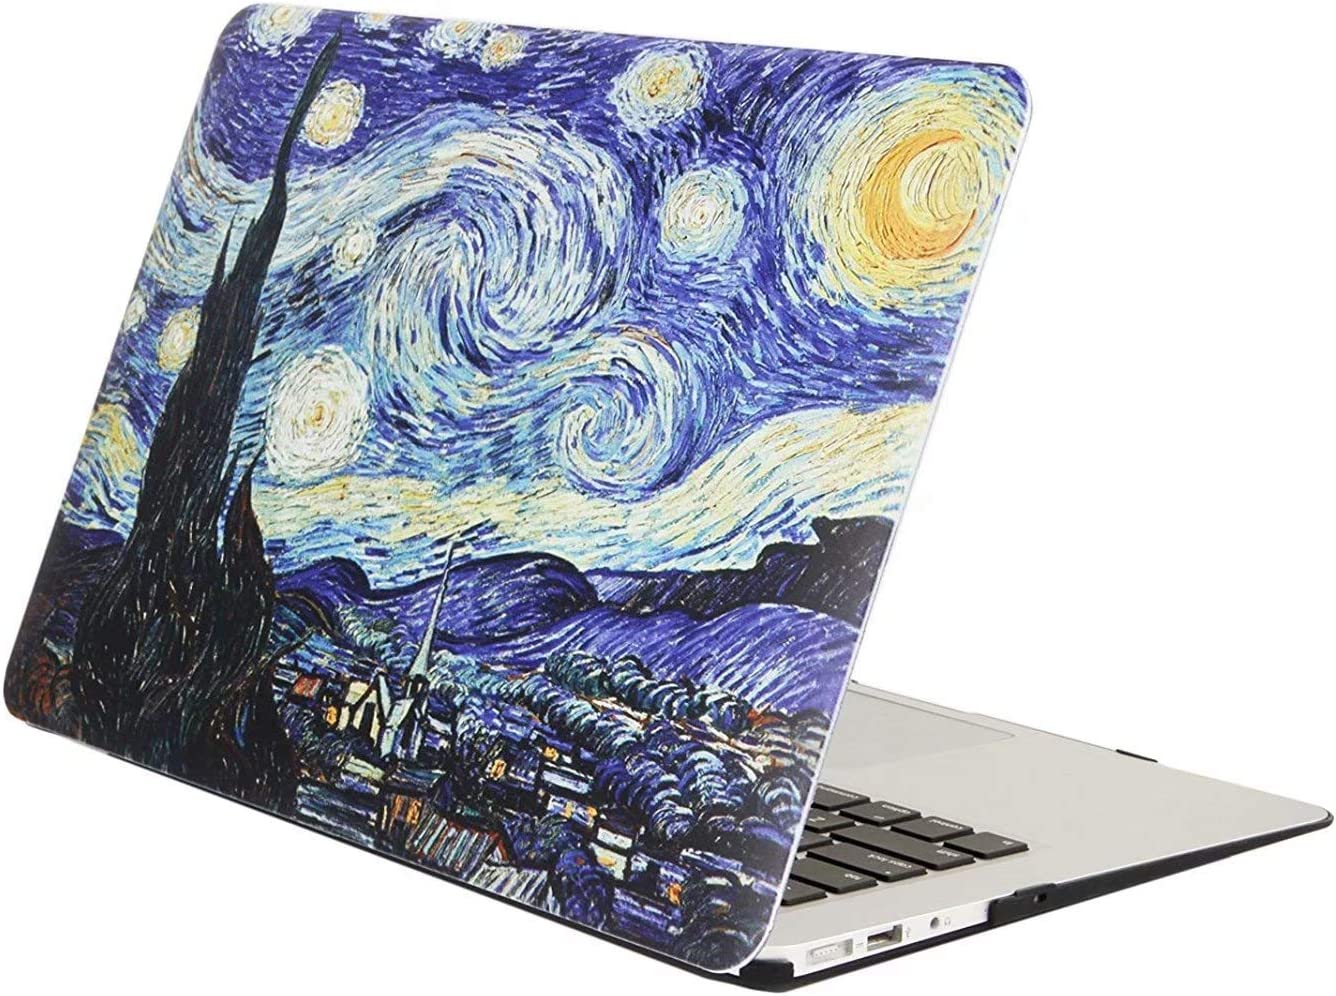 MonsDirect MacBook Air 13 Inch Case with Touch ID A2179, A1932, 2018,19,20 Released Rubberized Hard Plastic Case Cover Protective Snap on Shell for Retina MacBook Air 13 with Touch ID, Starry Night